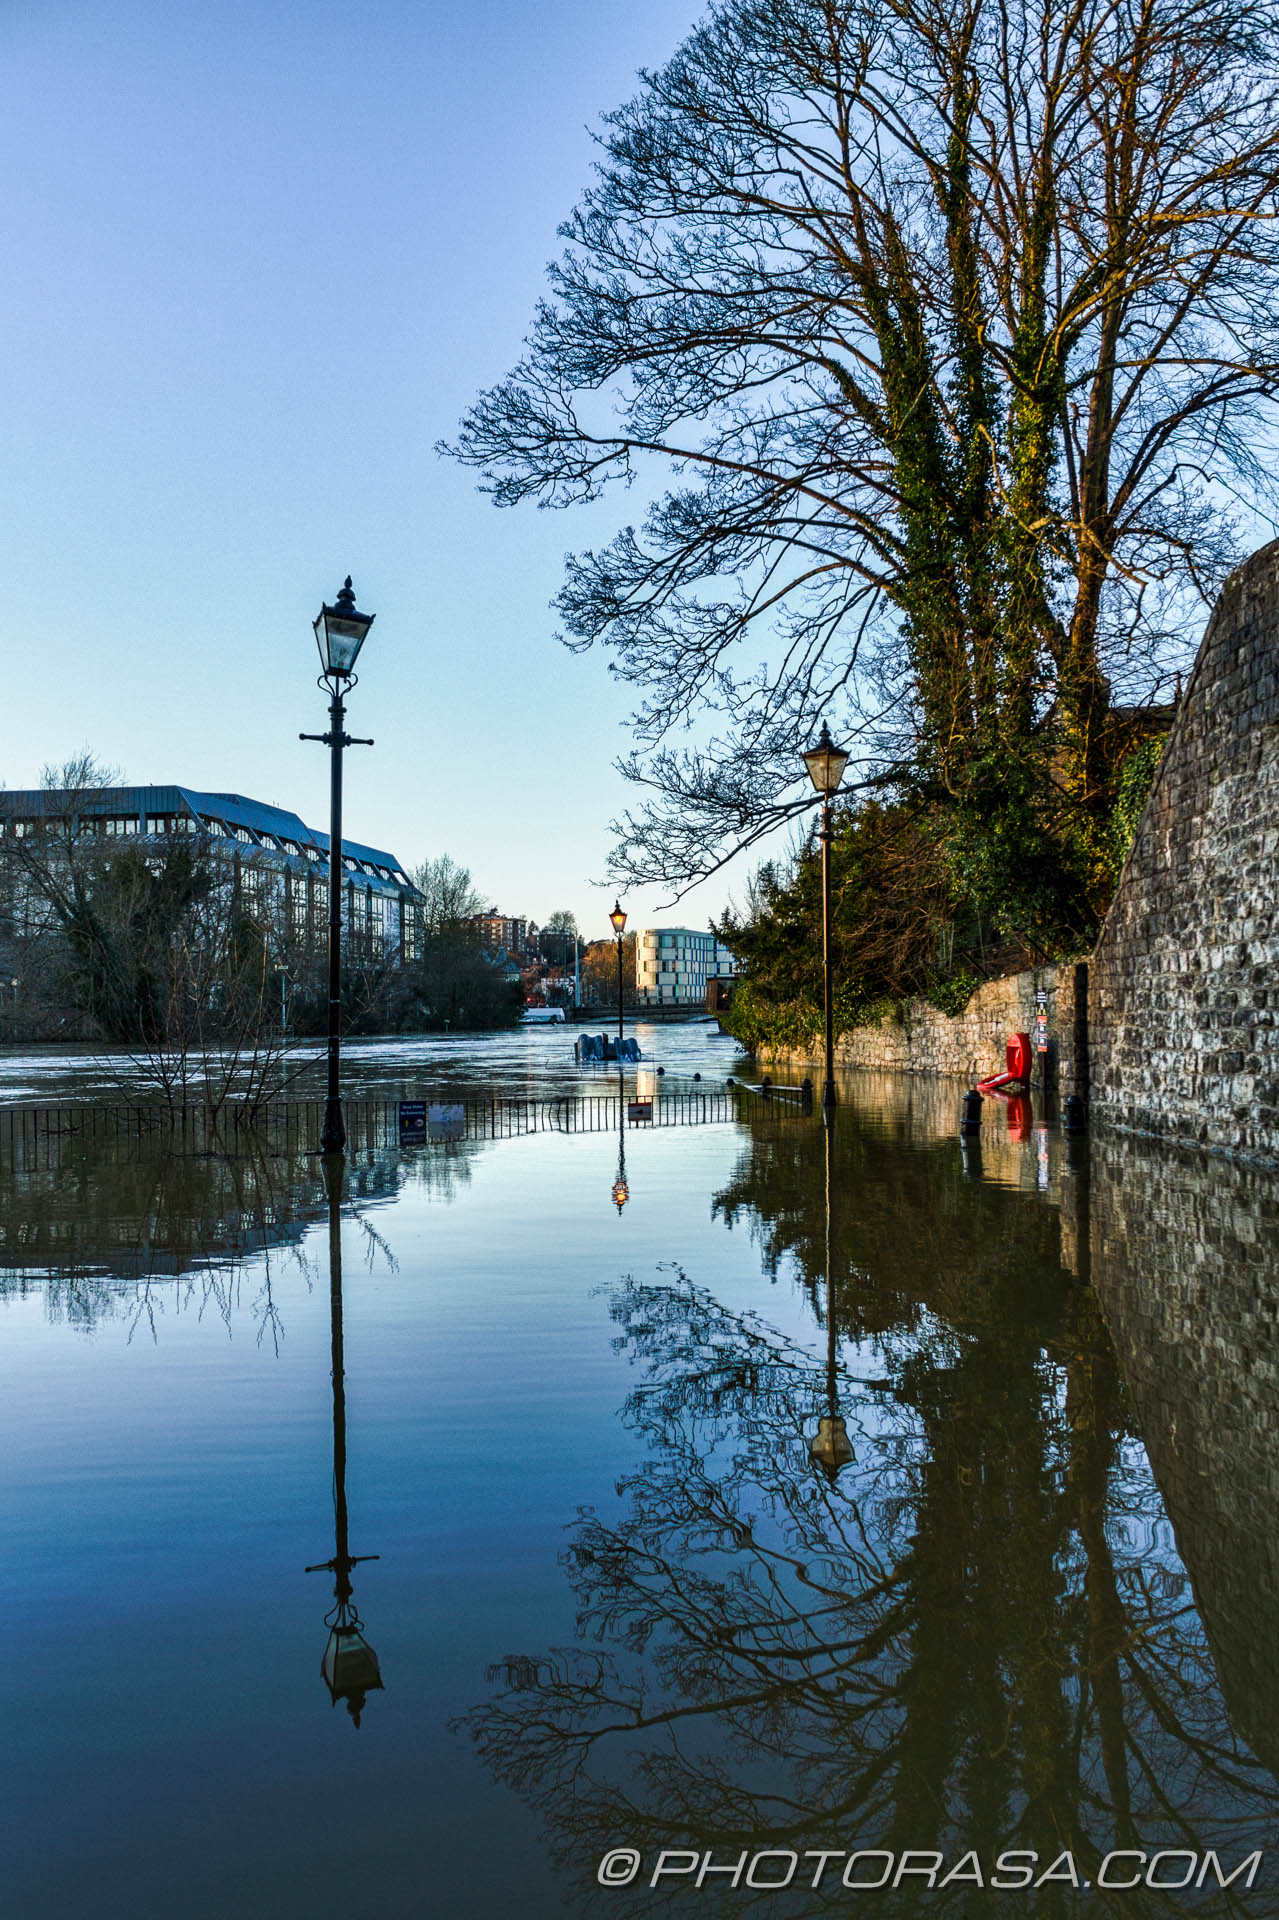 http://photorasa.com/wet-xmas-maidstone-river-medway-floods-town-centre/street-lamps-in-water/